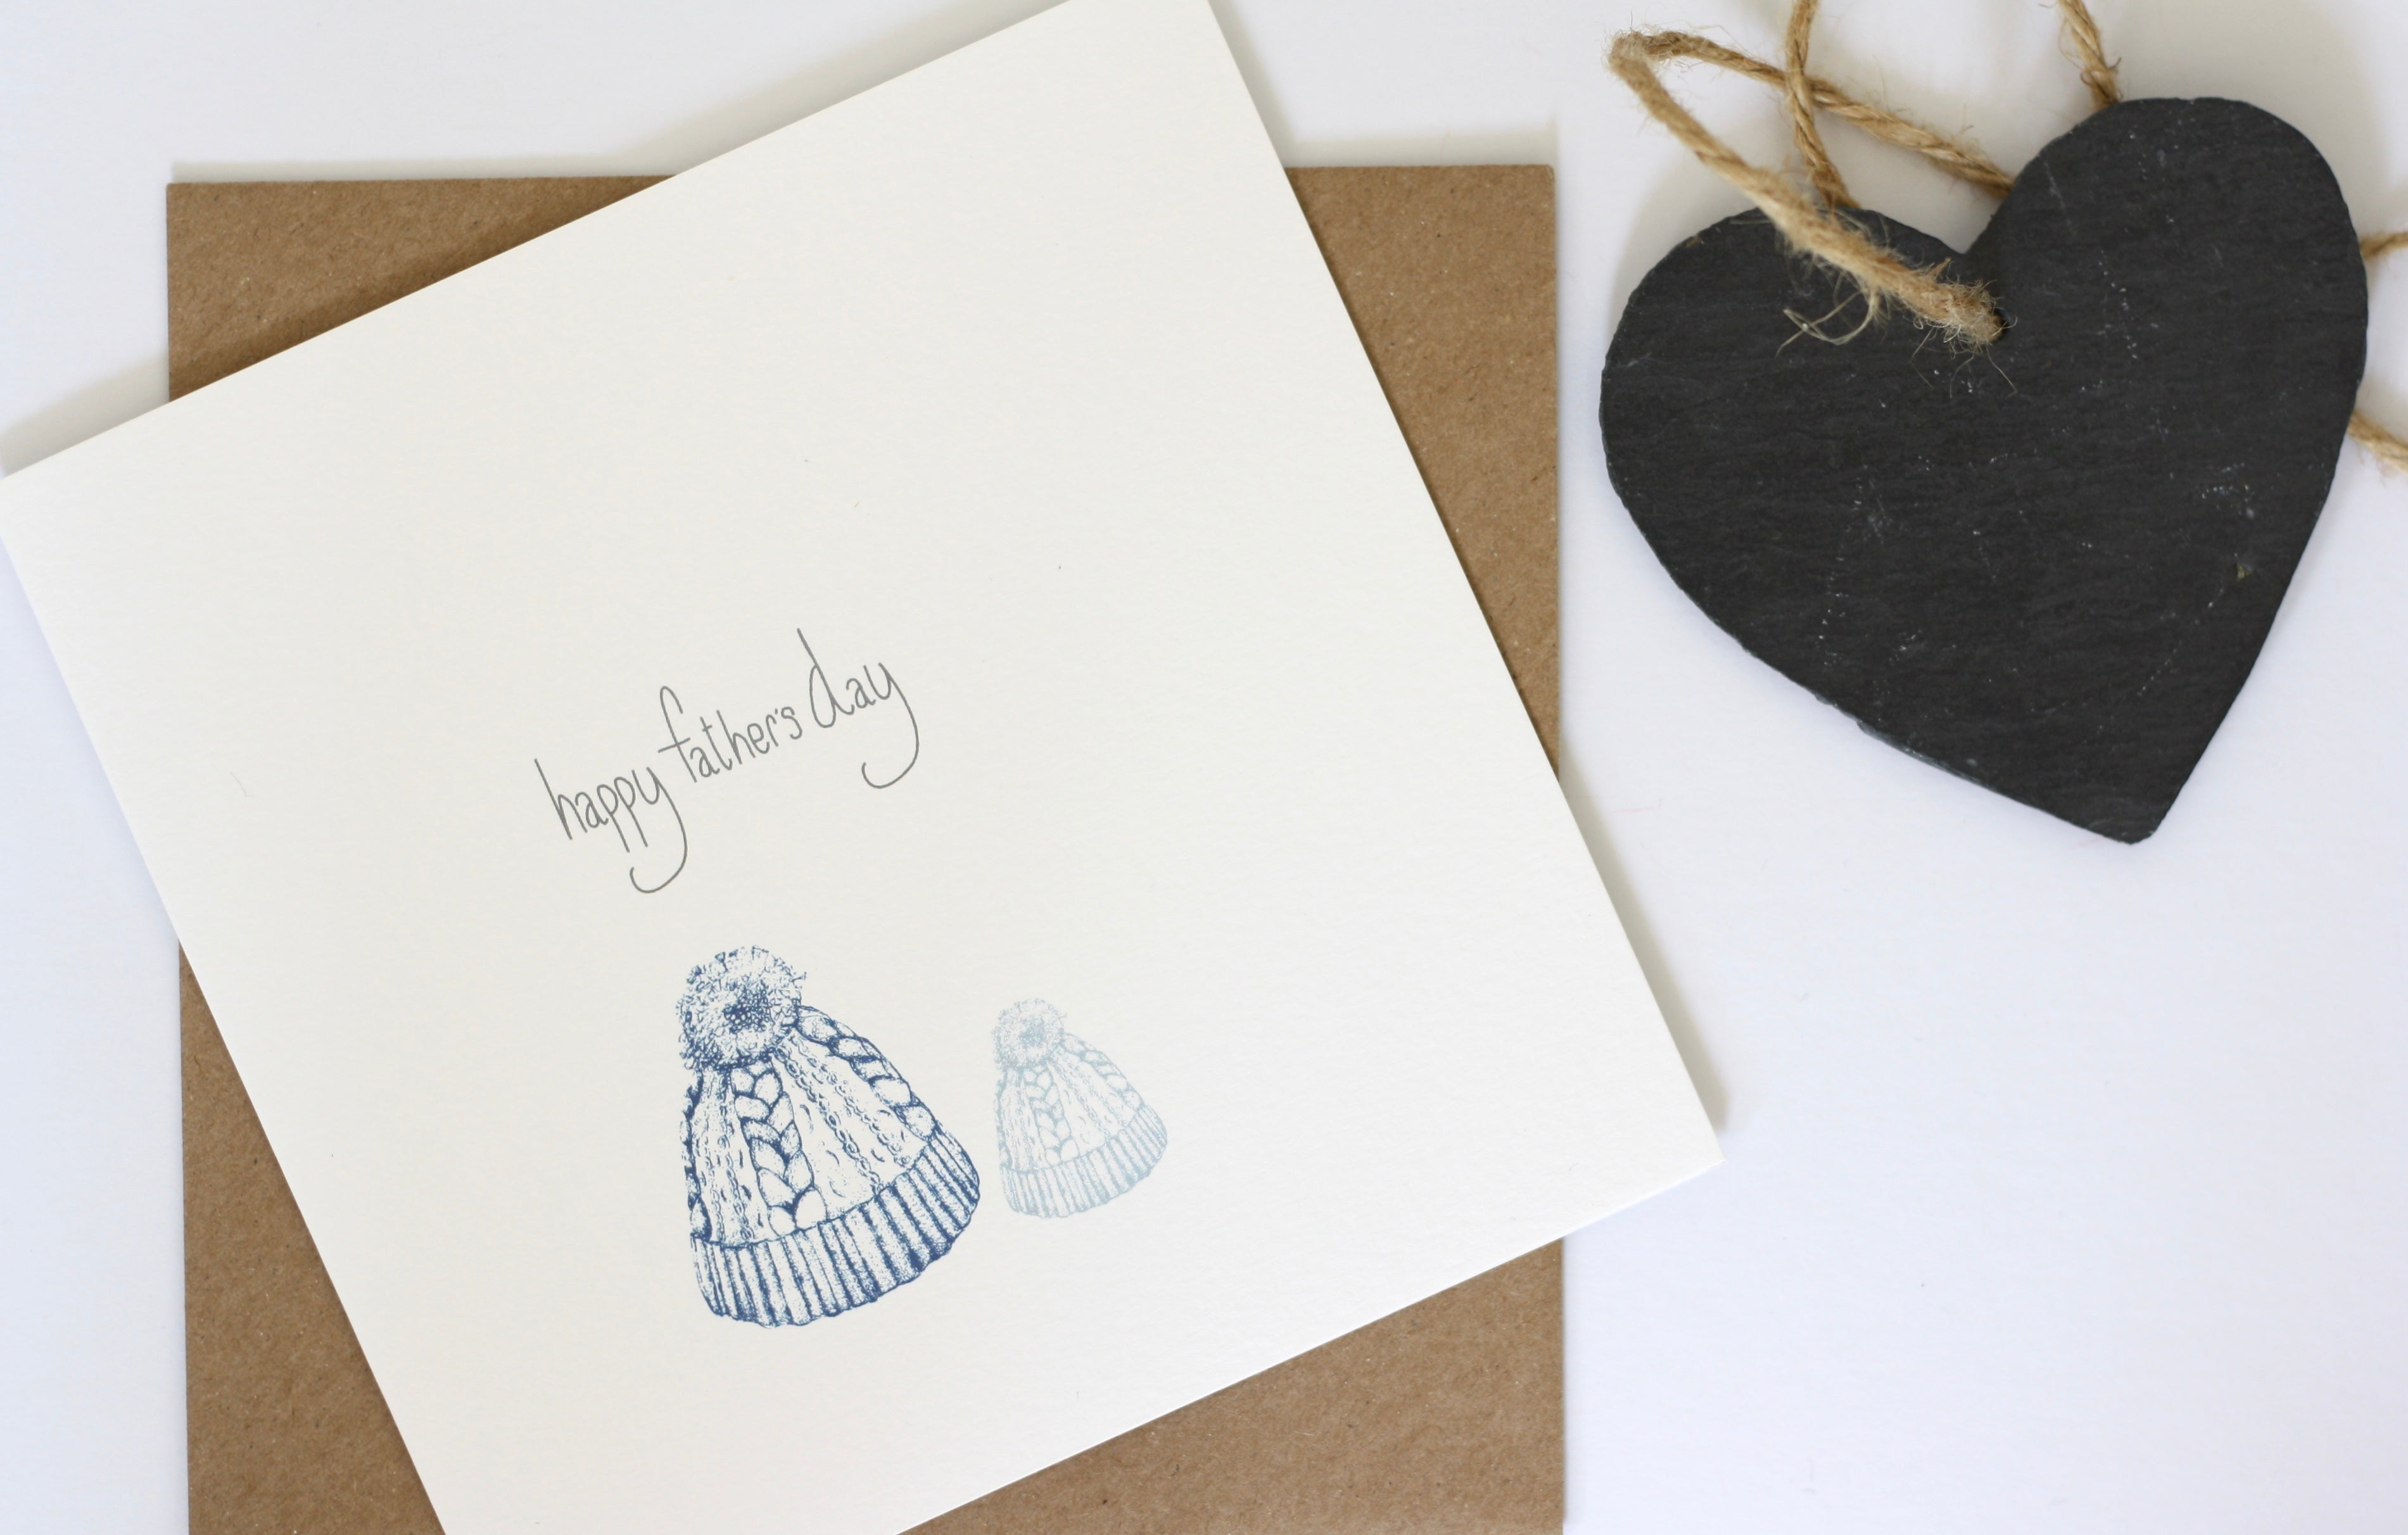 Happy fathers day card featuring a large and little, father and child bobble hat design hand drawn by Gemma Louise Joyce and available exclusively at Wonder of Kin.